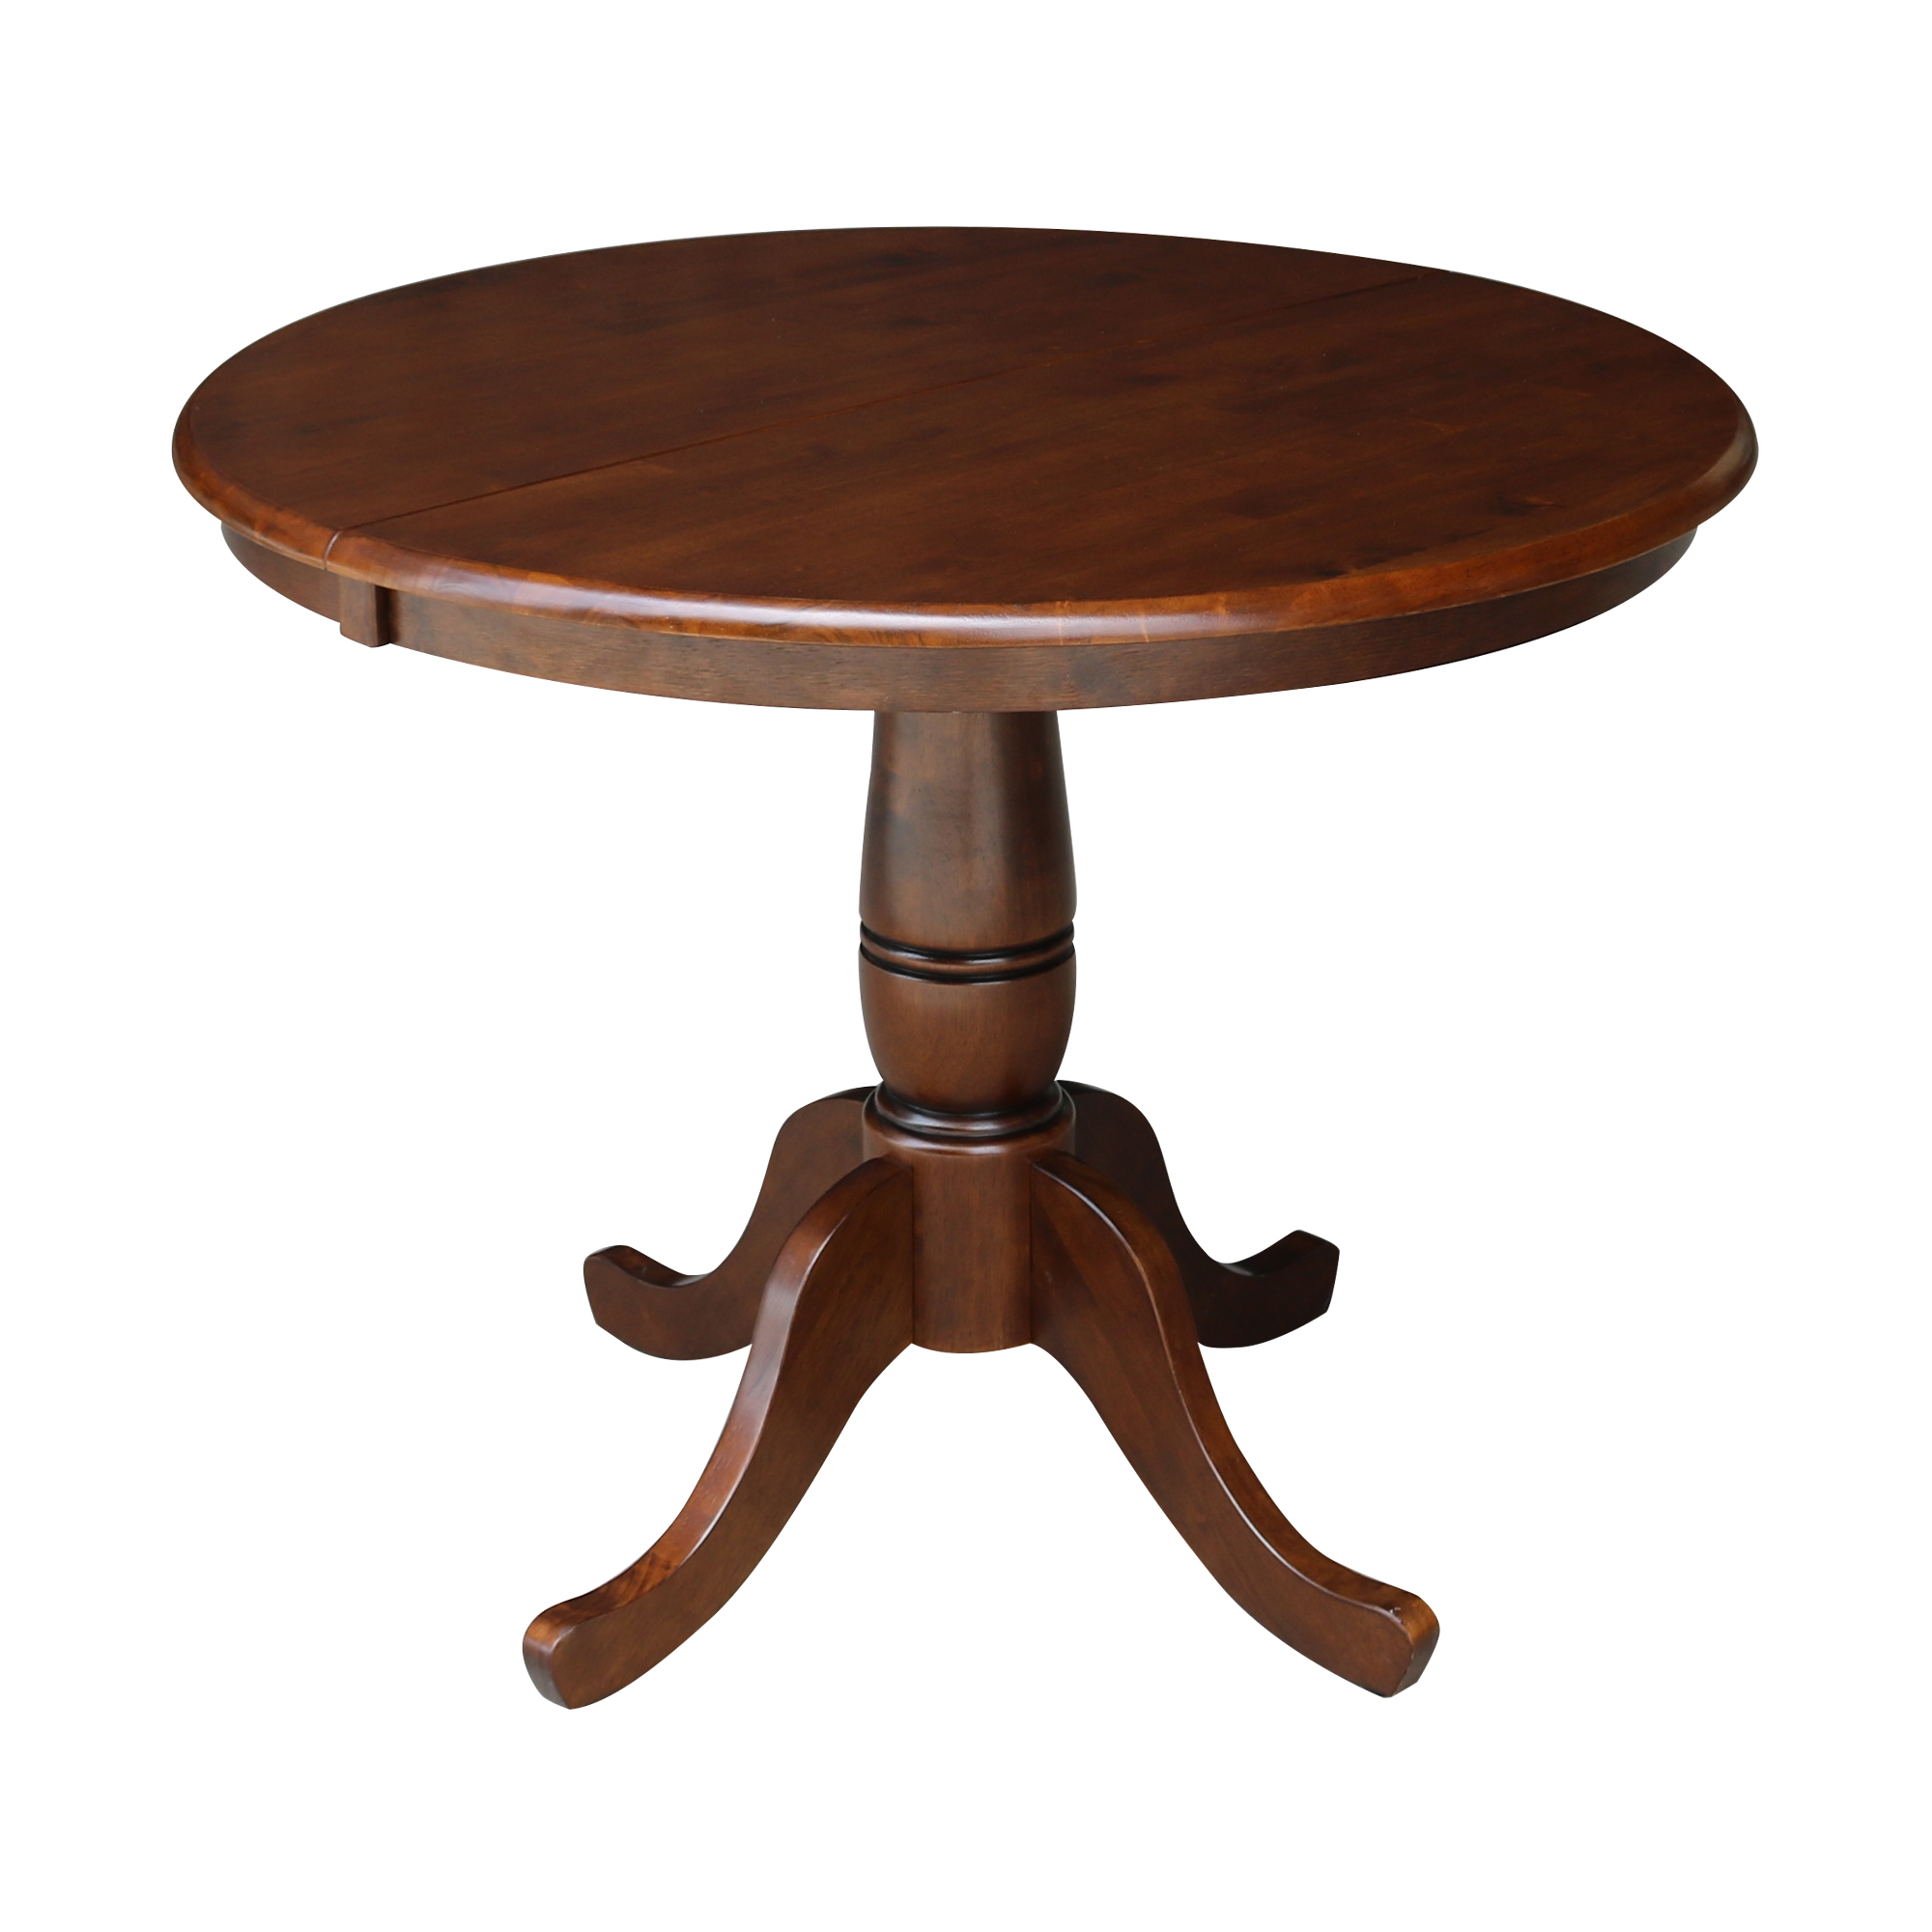 "36"" Round Top Pedestal Table with 12"" Leaf, 28.9""H"